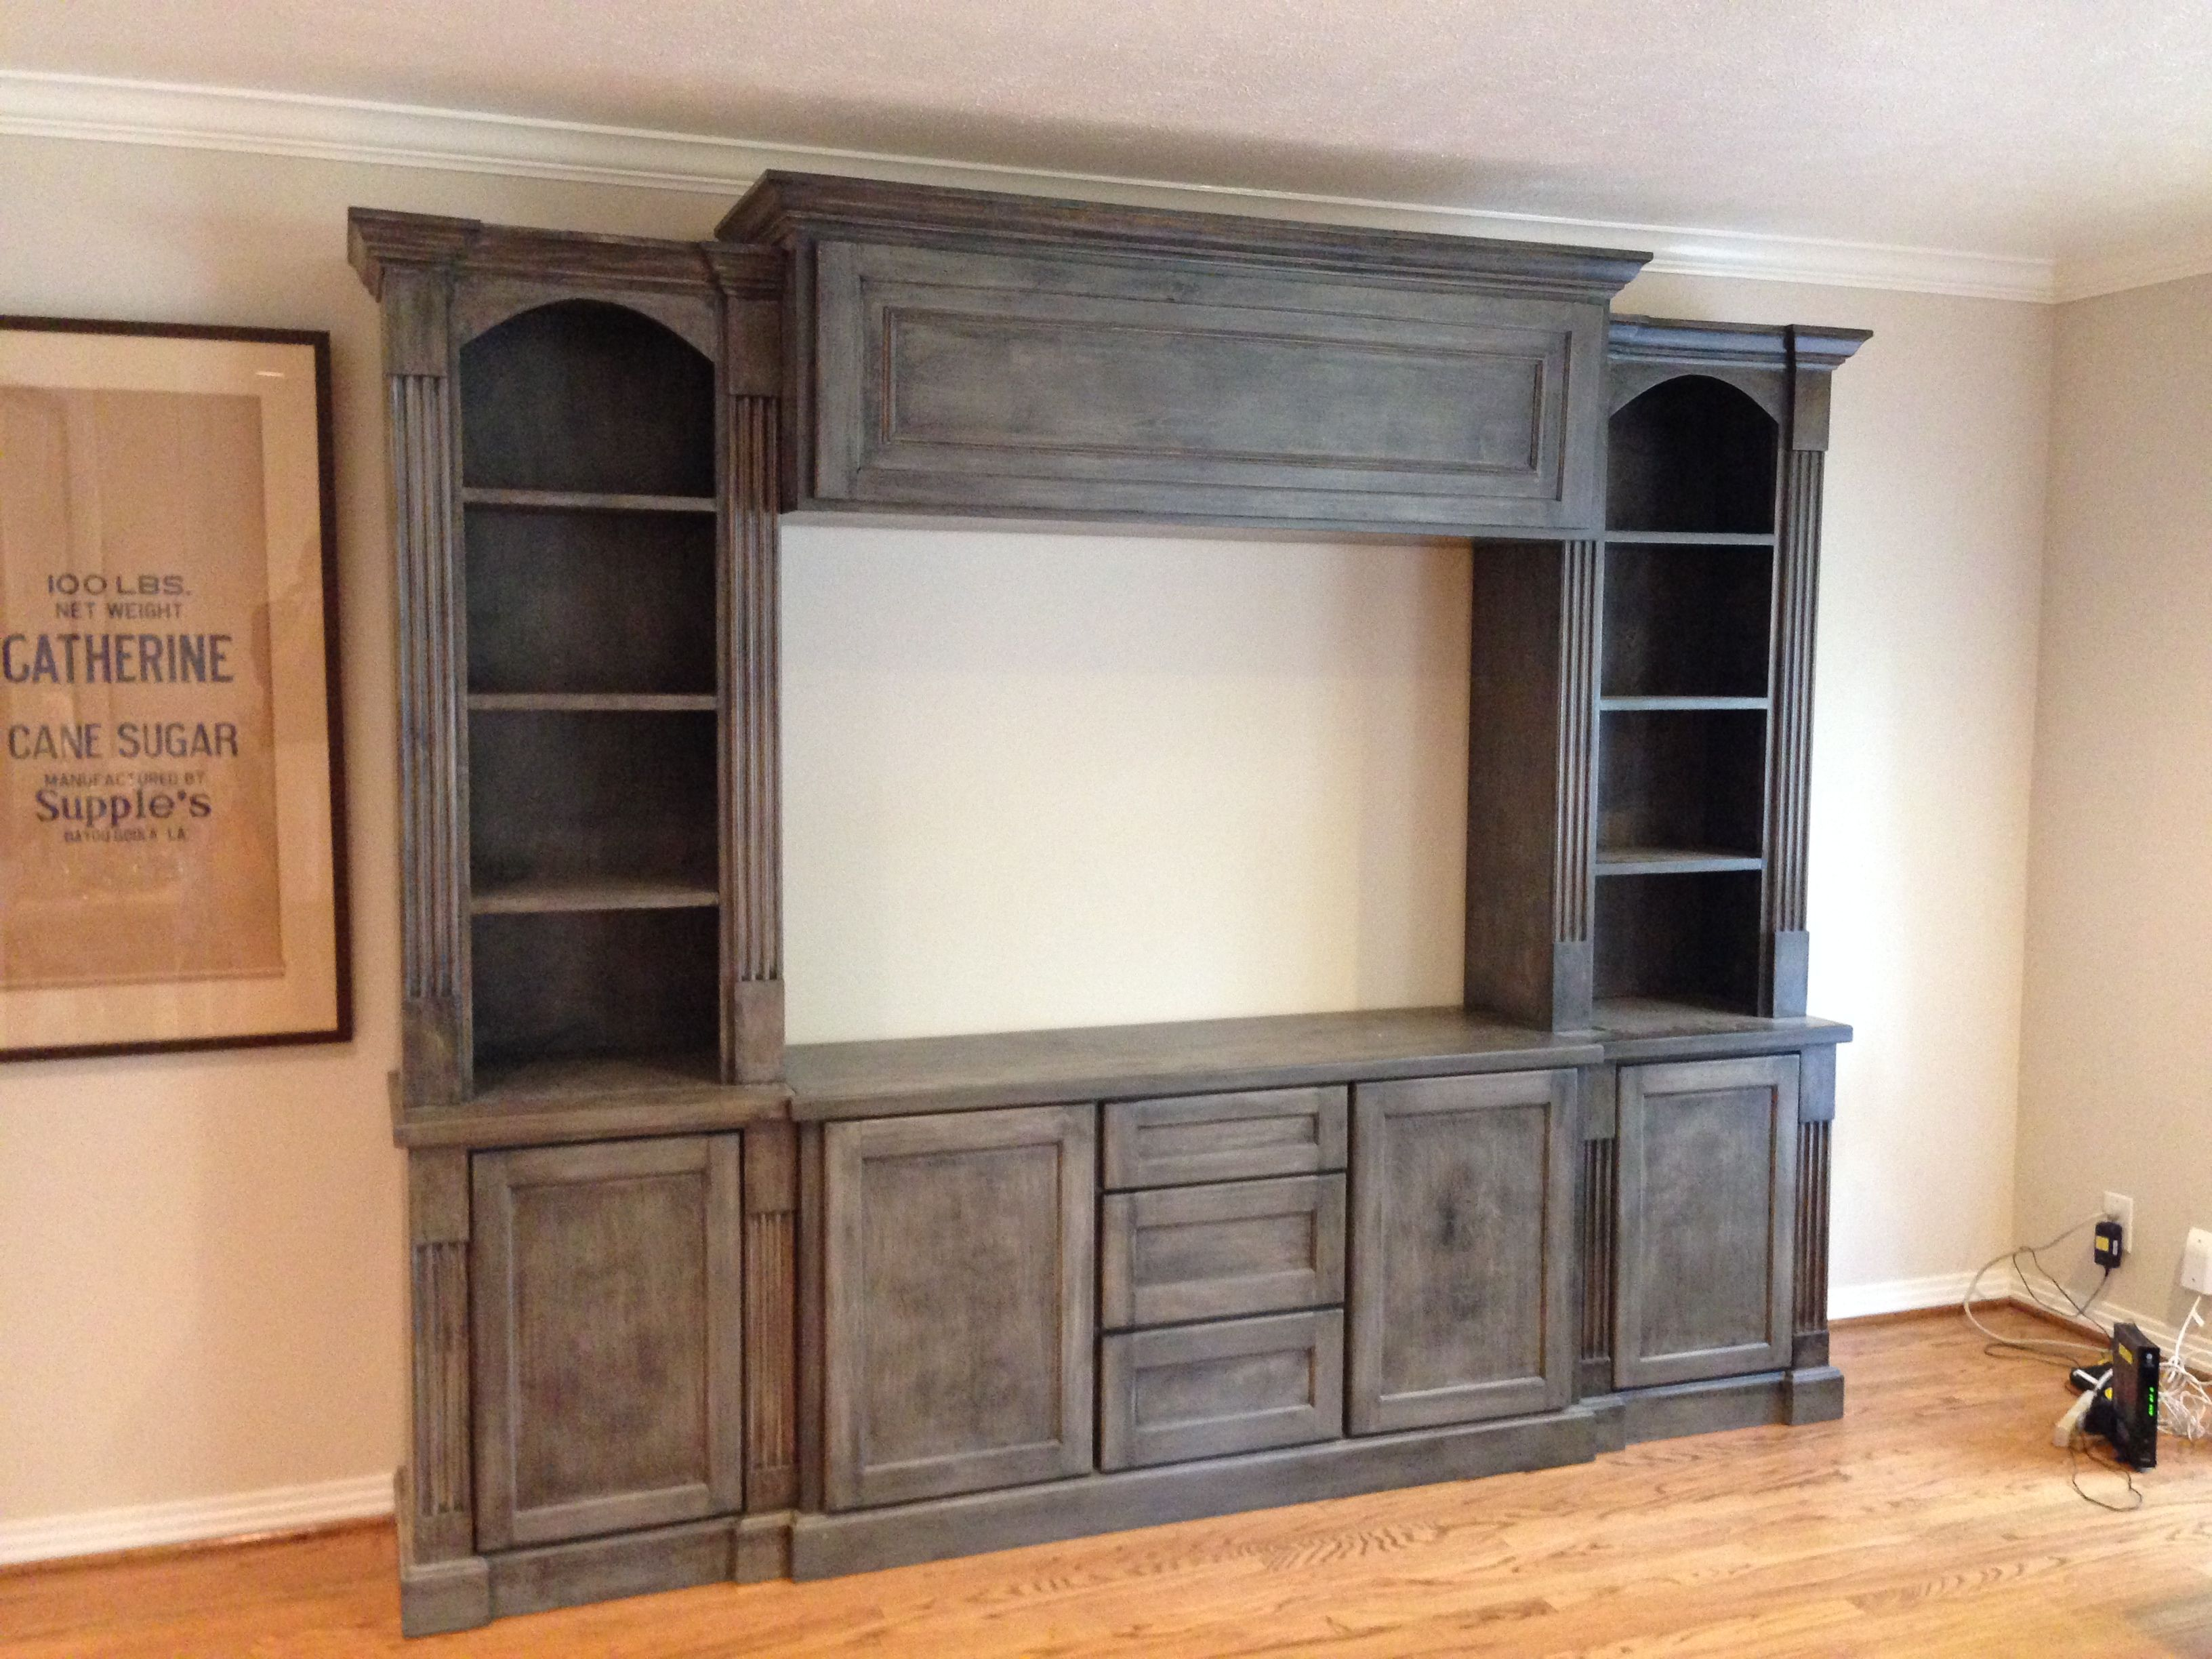 El Viejo Mexico Custom Furniture Replicate High End For A Lower Price Recommended In Houston Great Quality